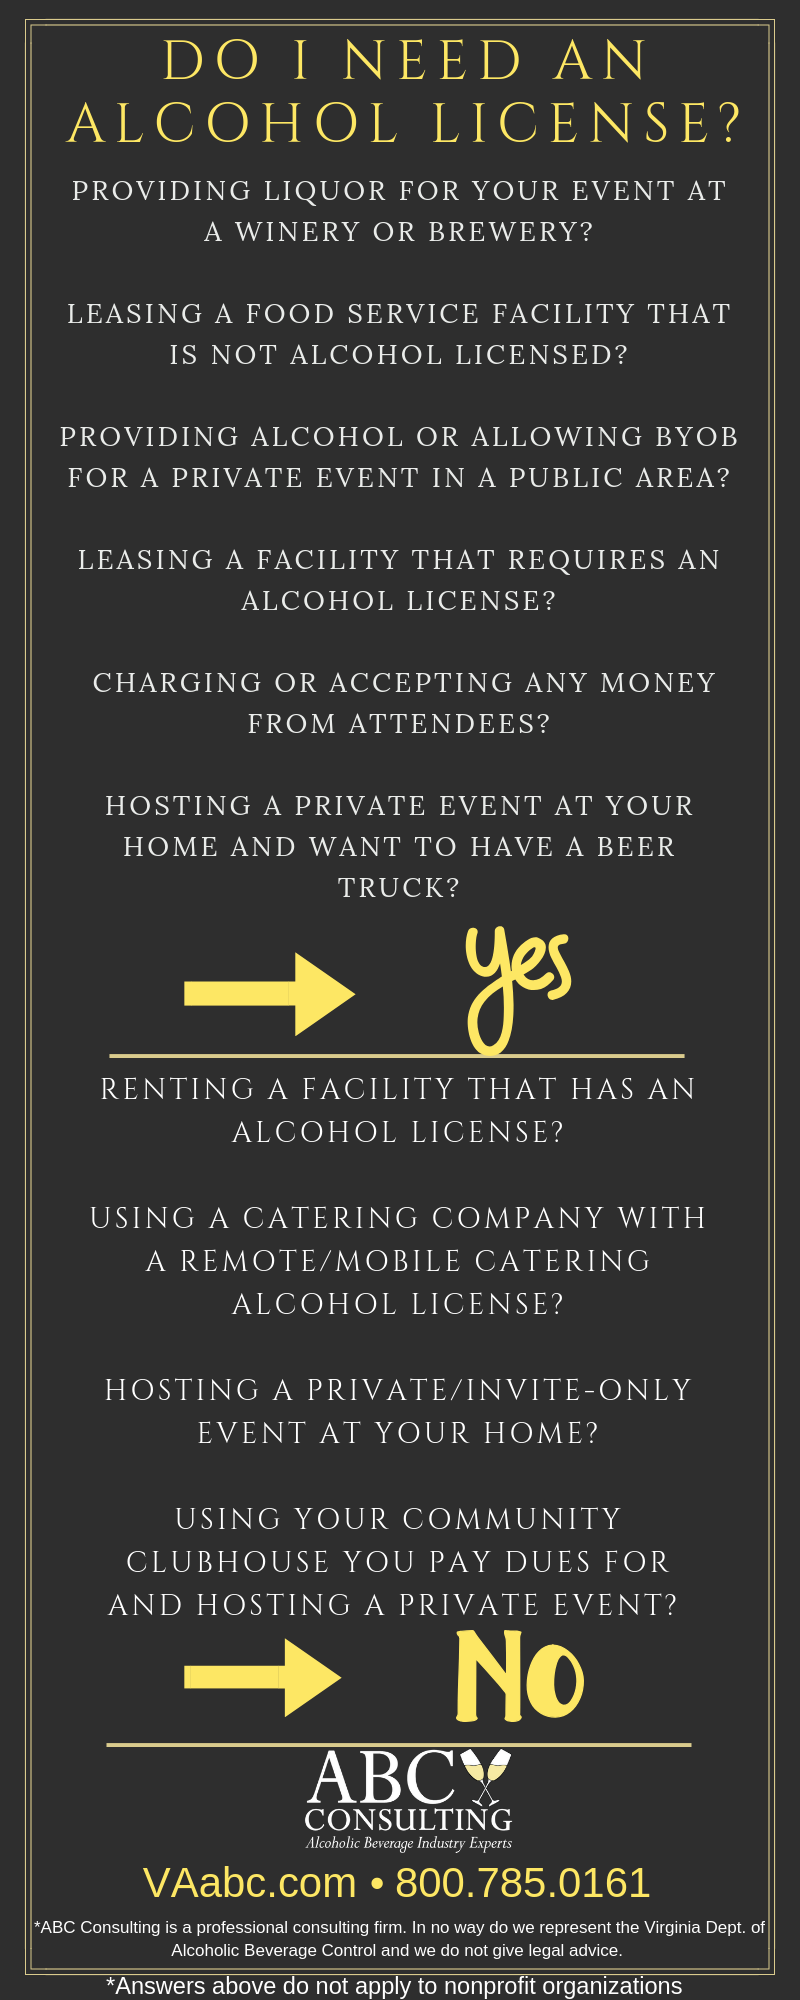 a6f8aba7fadf3821b74724c75d7a81f7 - How To Get A Liquor License For An Event